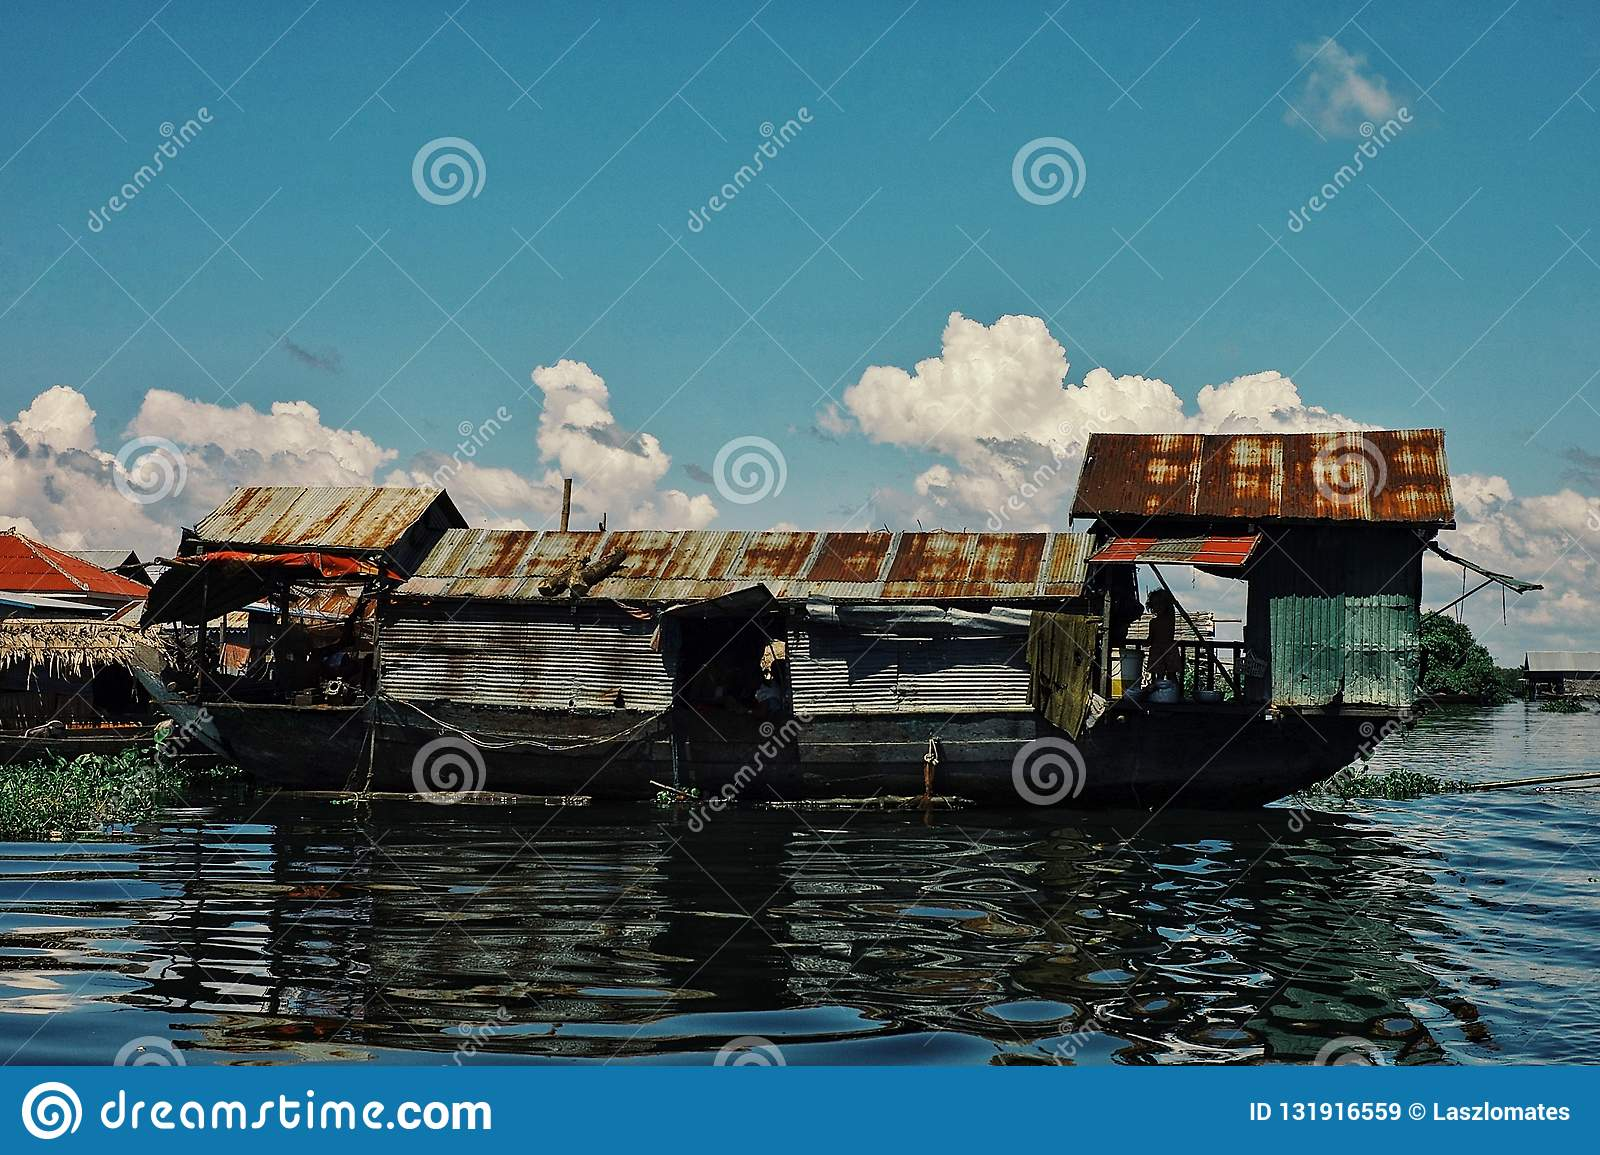 makeshift floating boat like house building in the middle of the flooded lake